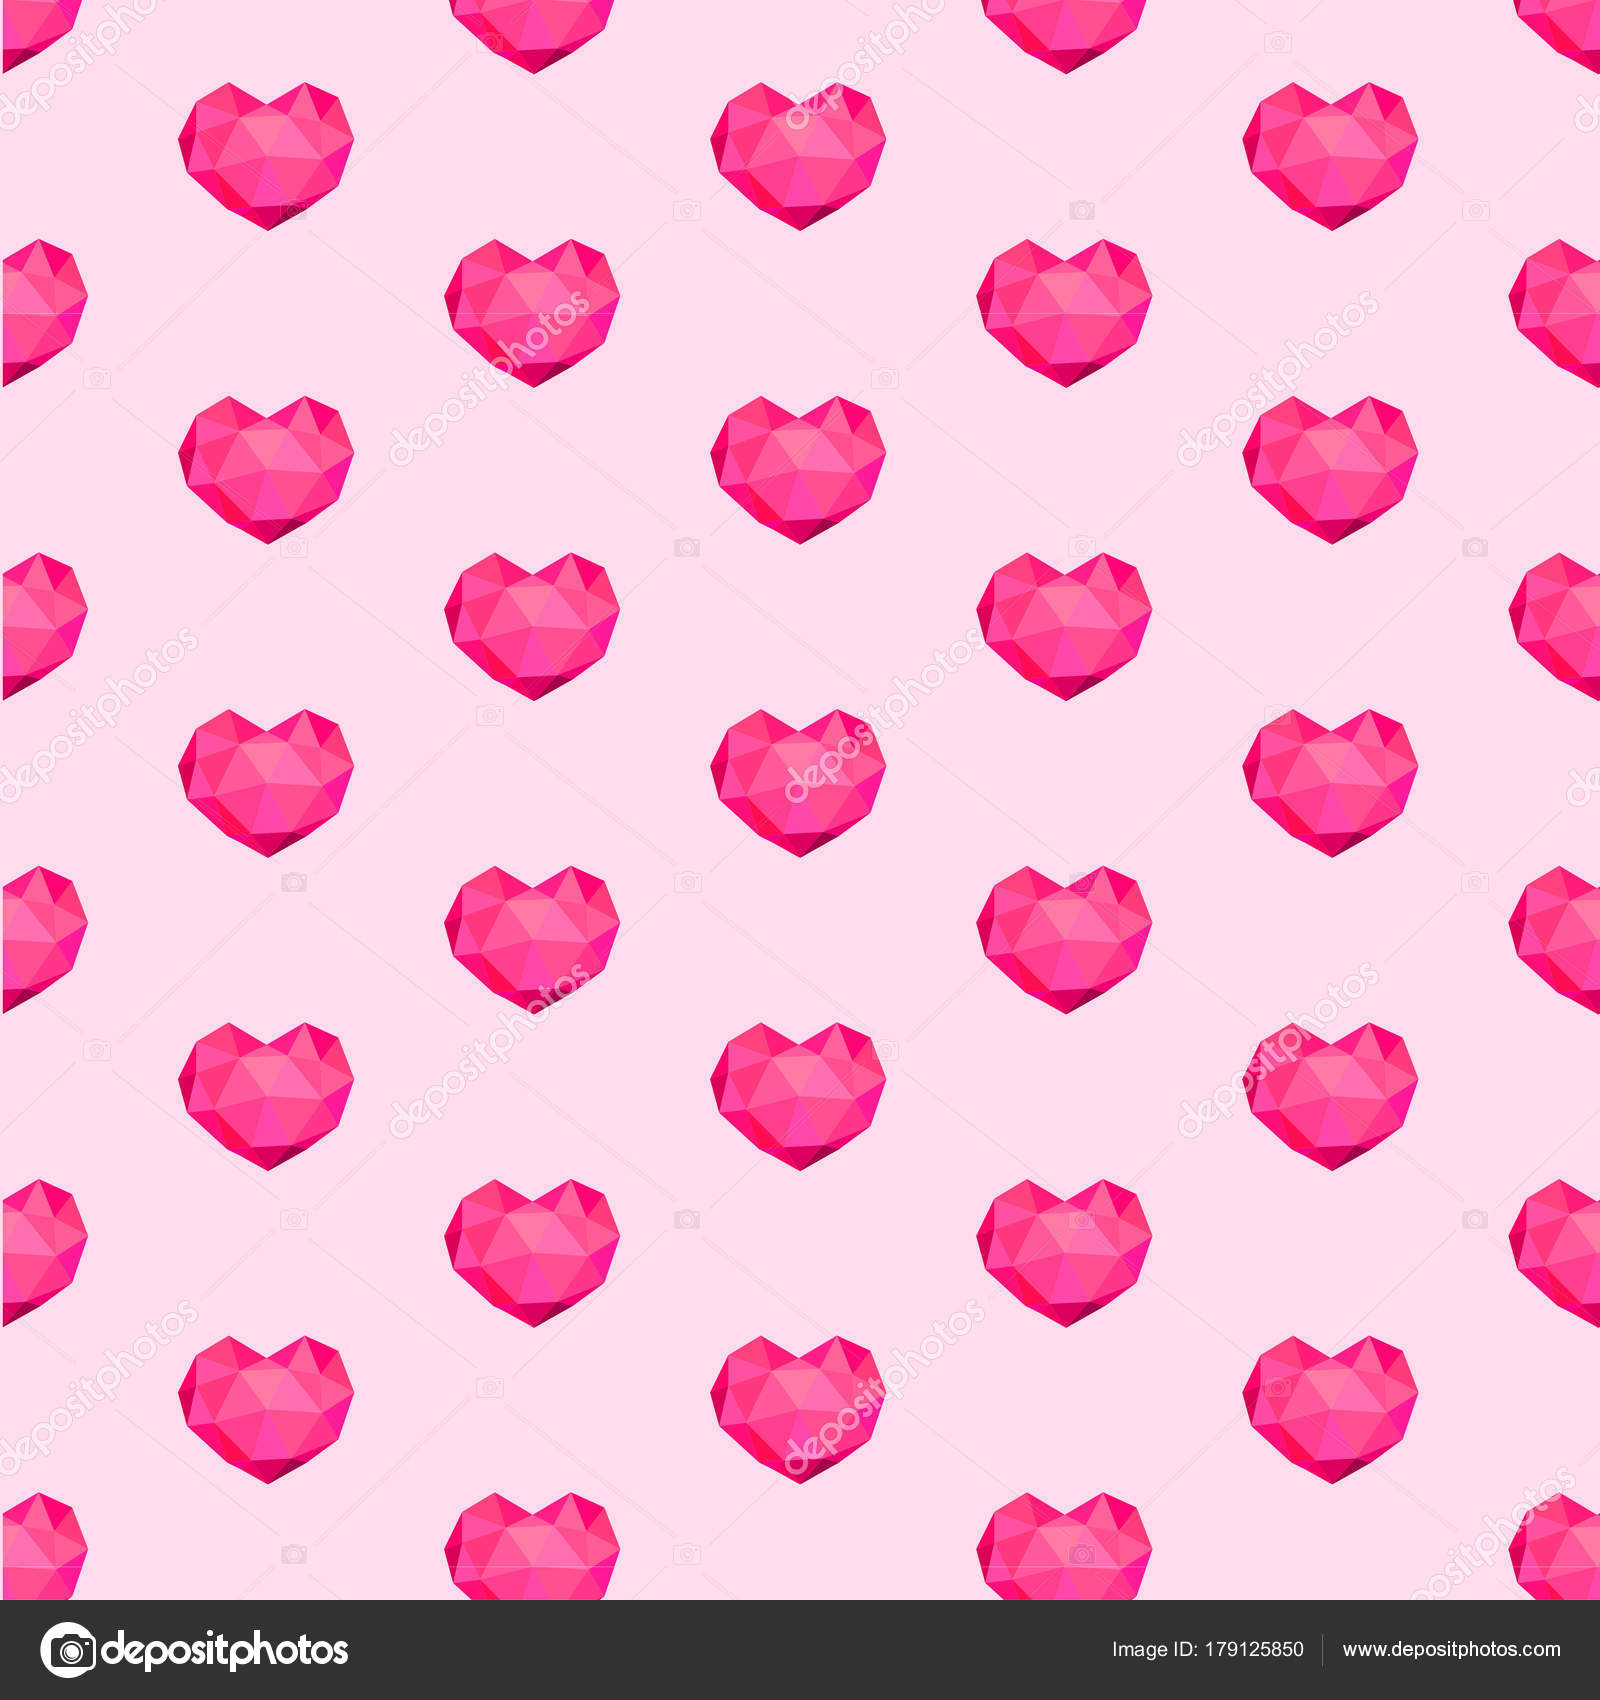 Vector Seamless Pattern With Geometric Hearts Polygonal Diamond For Fabric Textile Wrapping Paper Wallpaper Backdrop